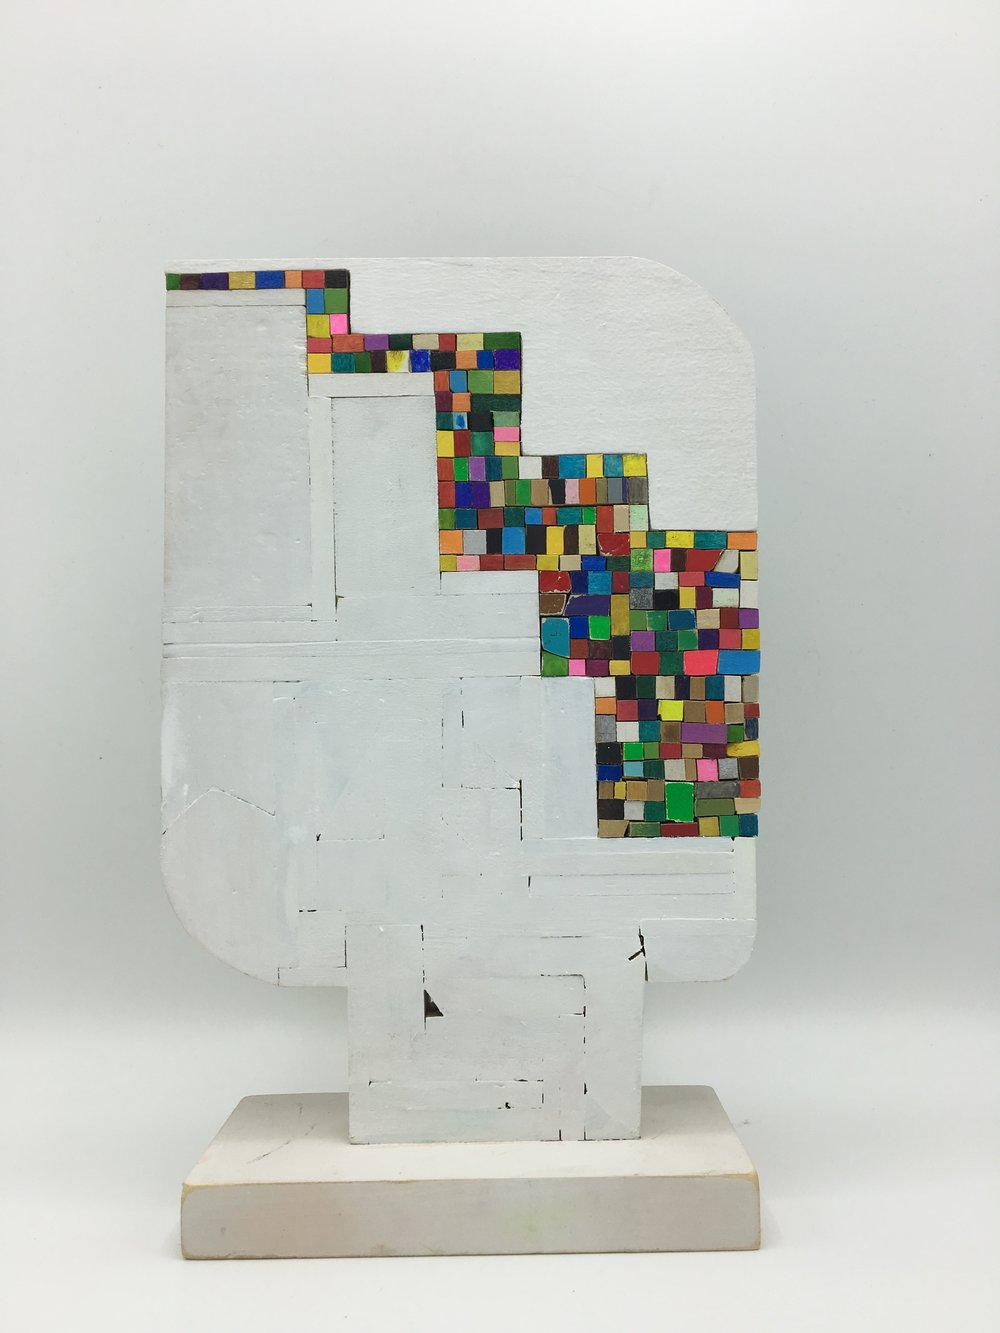 8 Bit, 2016 Wood, Paint, Colored Pencil, Glue 10 ½ x 6 ½ x 3 in.